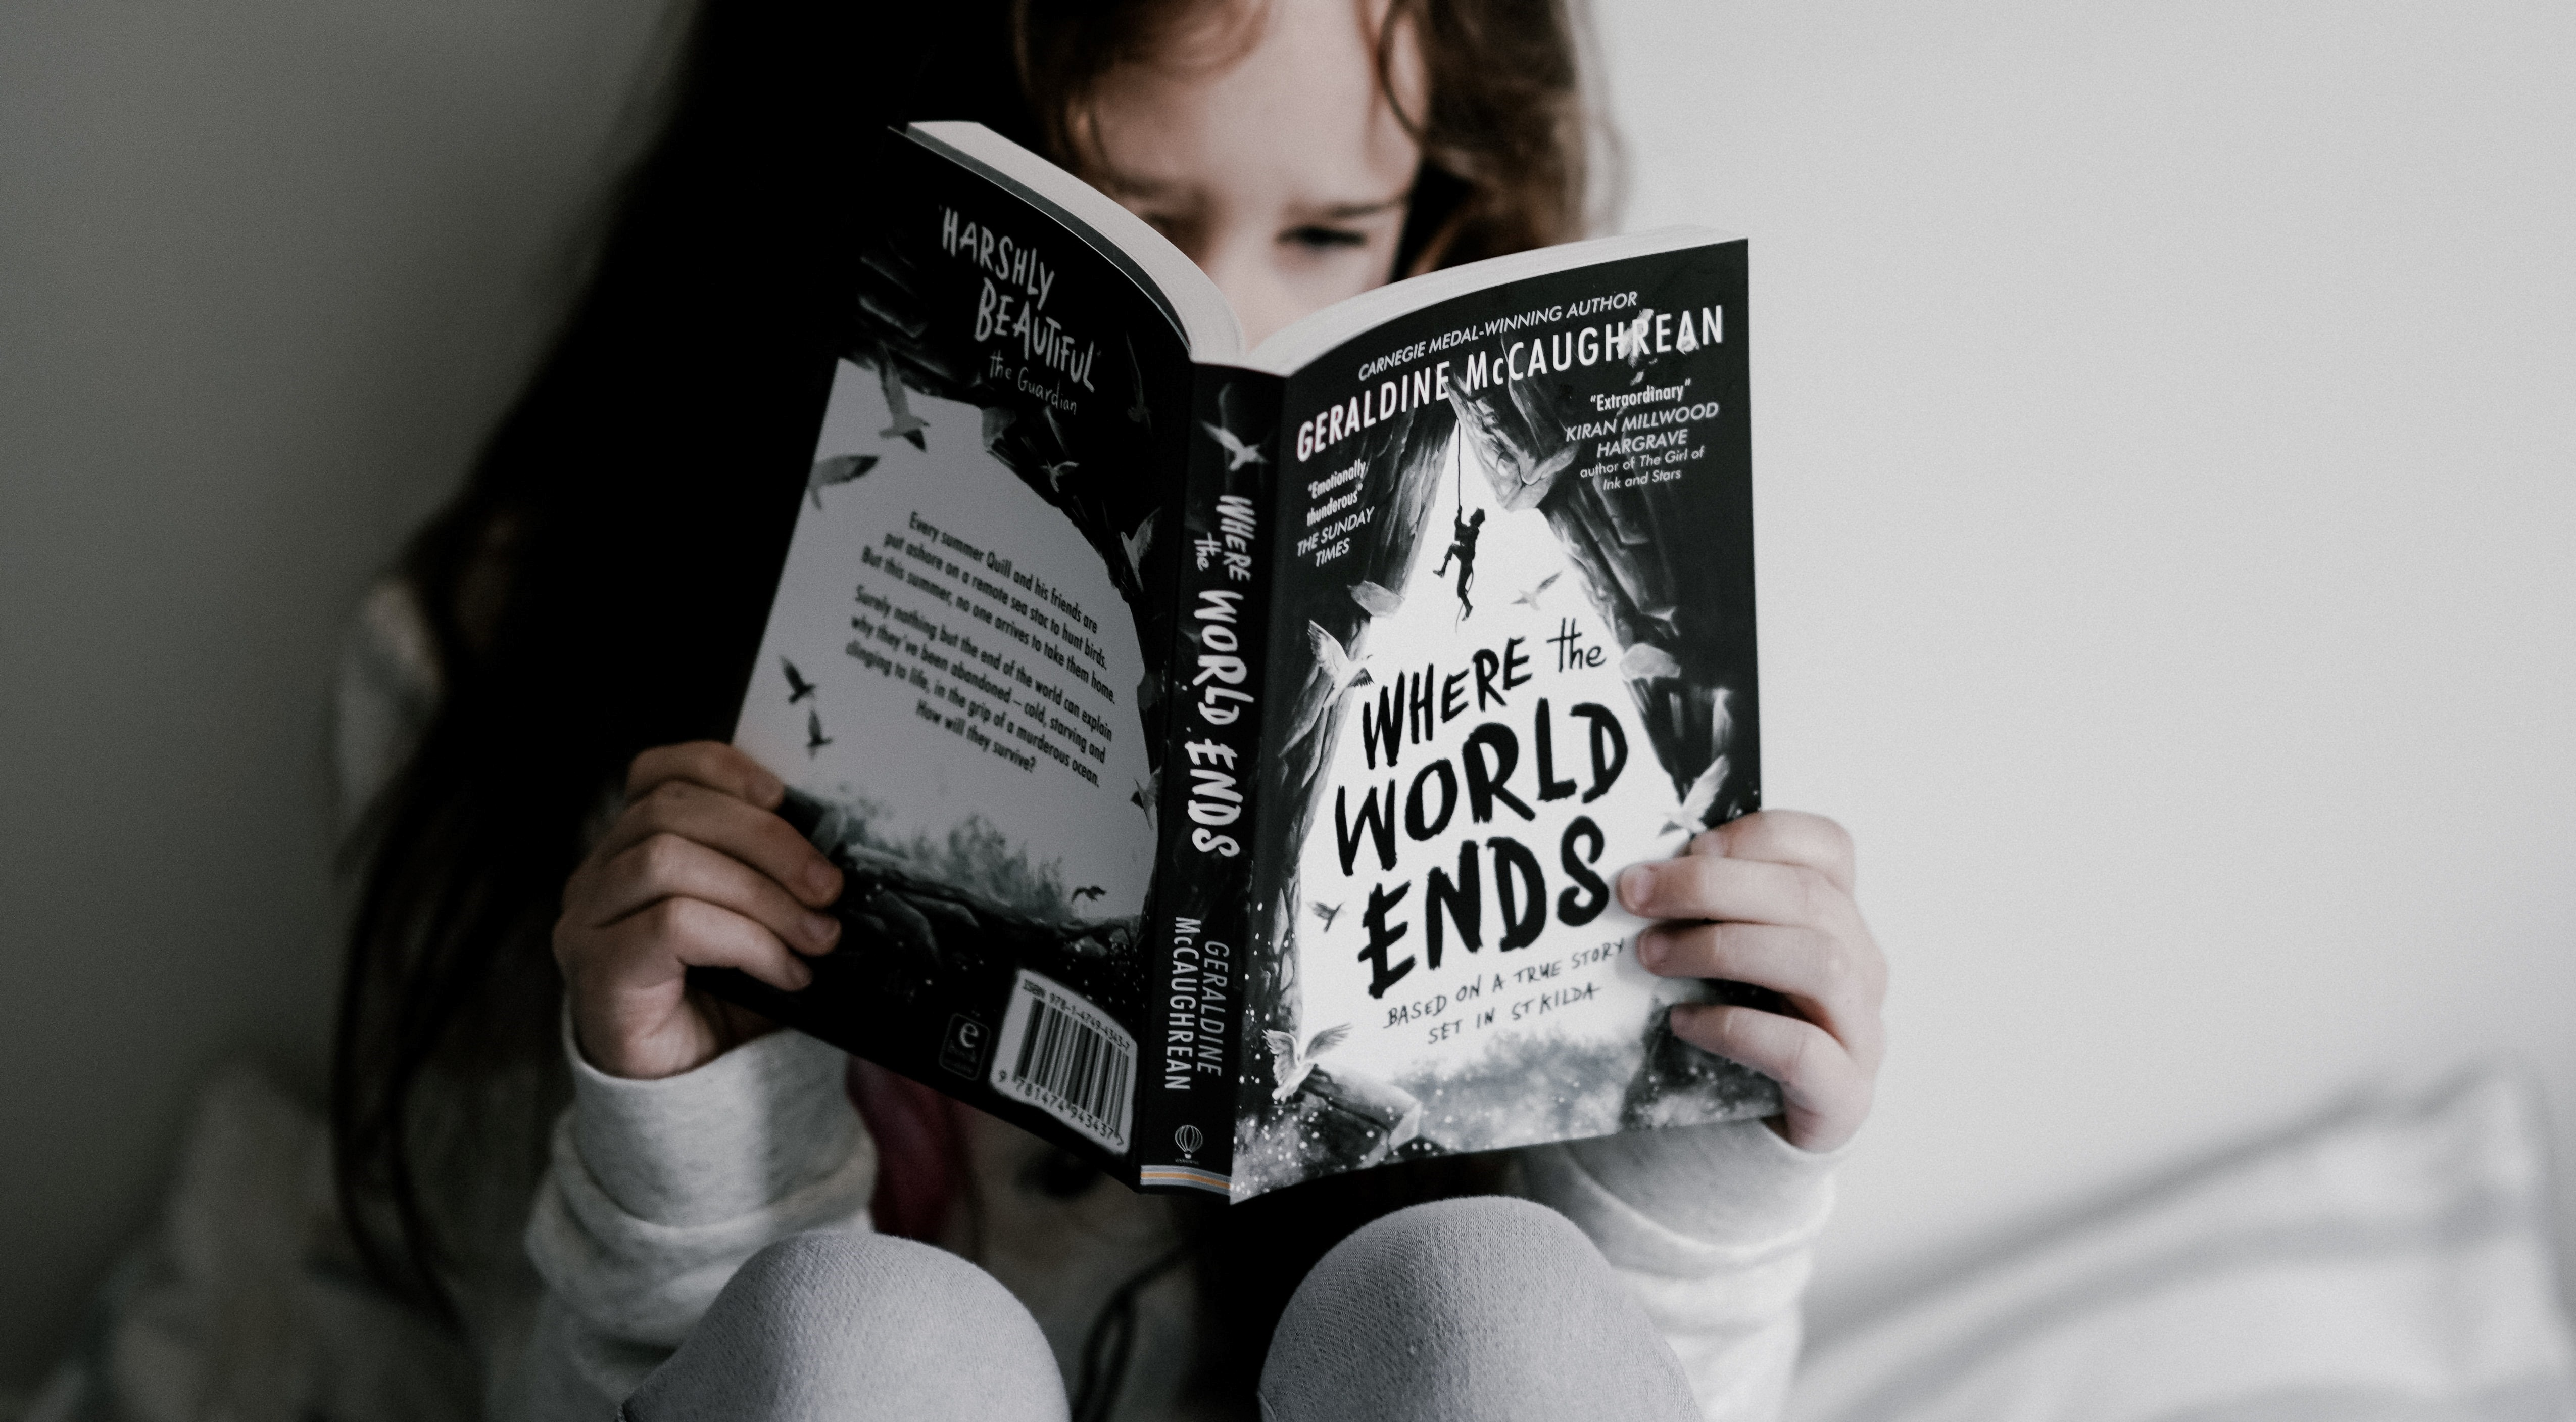 Pregnant Zombie Mothers And Other Stories For The End Of The World